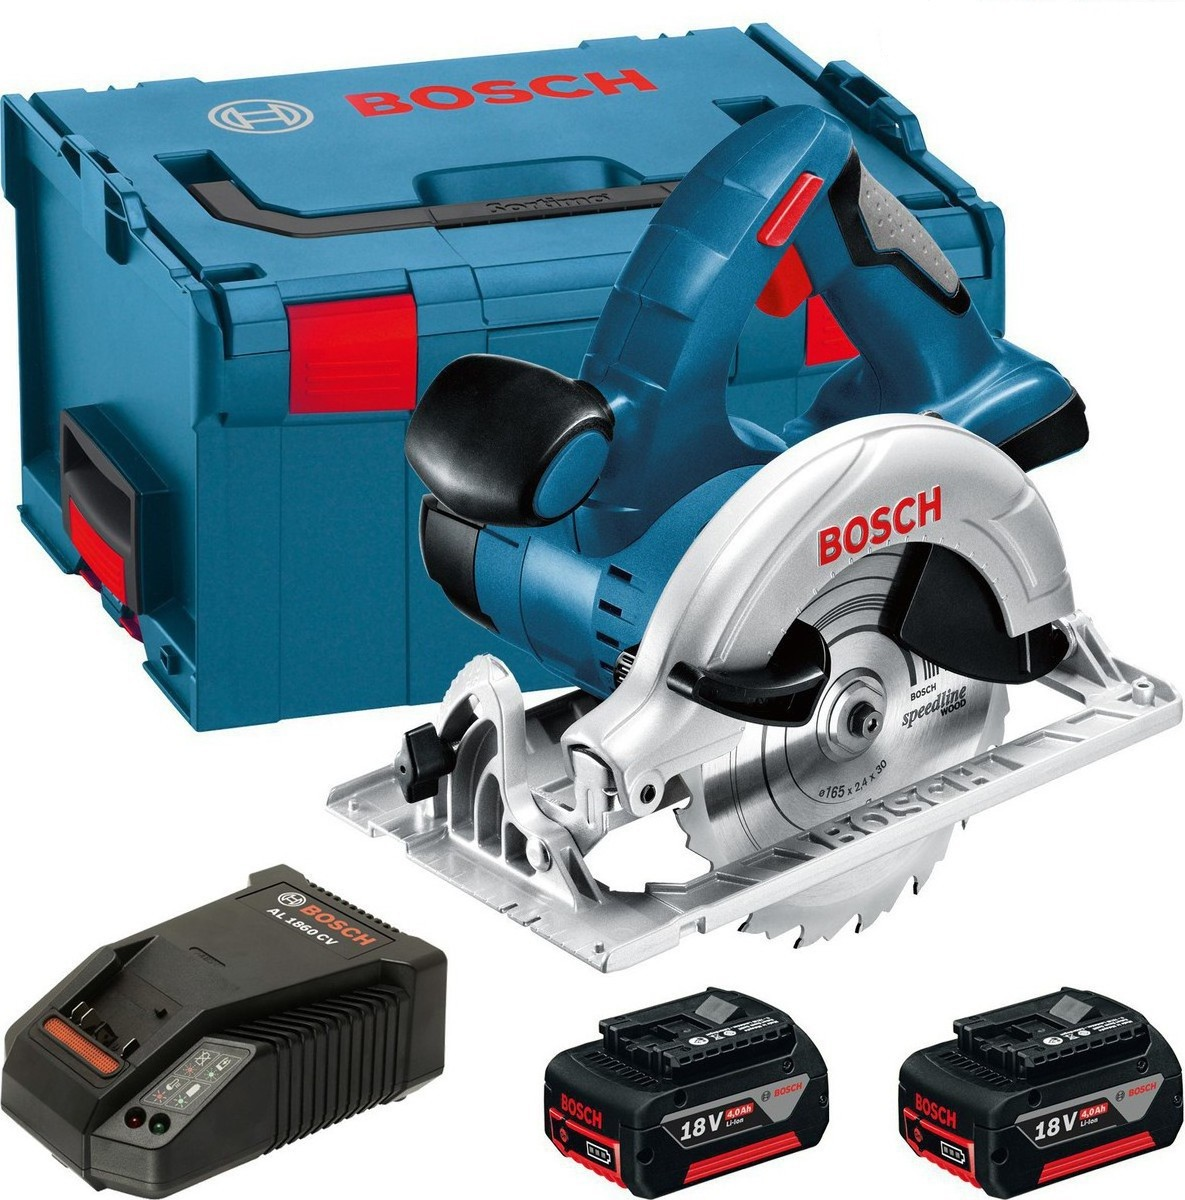 bosch gks 18 v li cordless circular saw inc 2x 4ah batteries charger and l boxx carry case. Black Bedroom Furniture Sets. Home Design Ideas